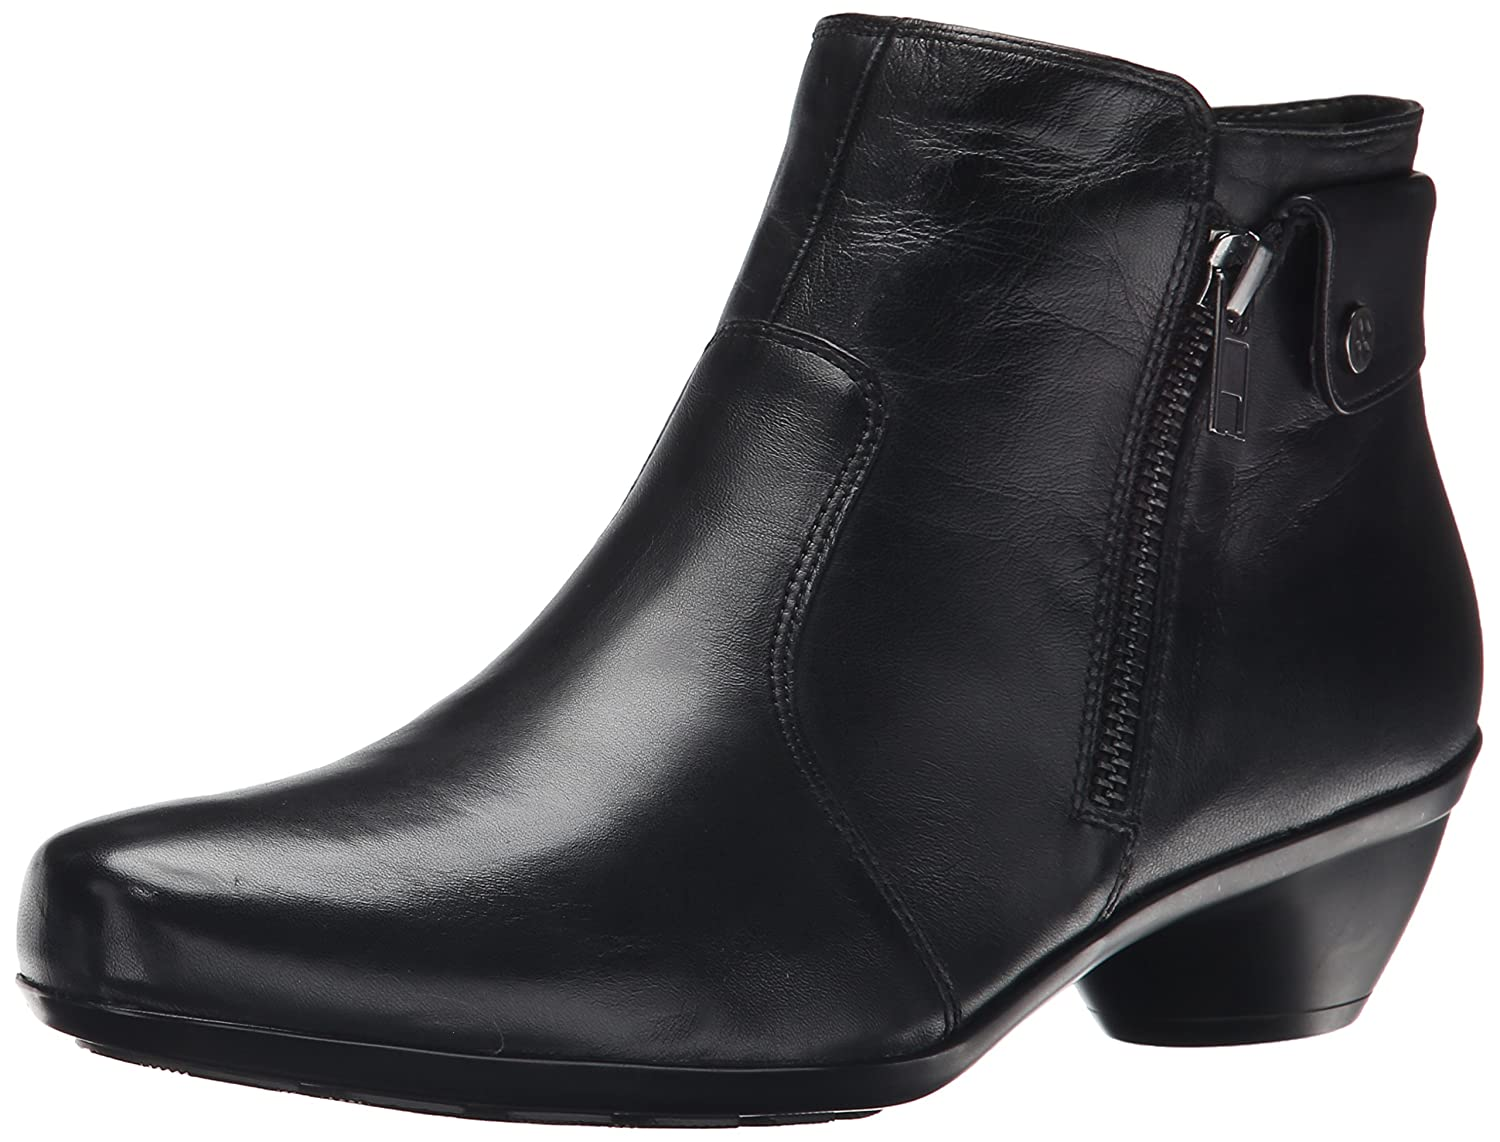 Naturalizer Women's Haley Boot B00UVA1I28 12 B(M) US|Black